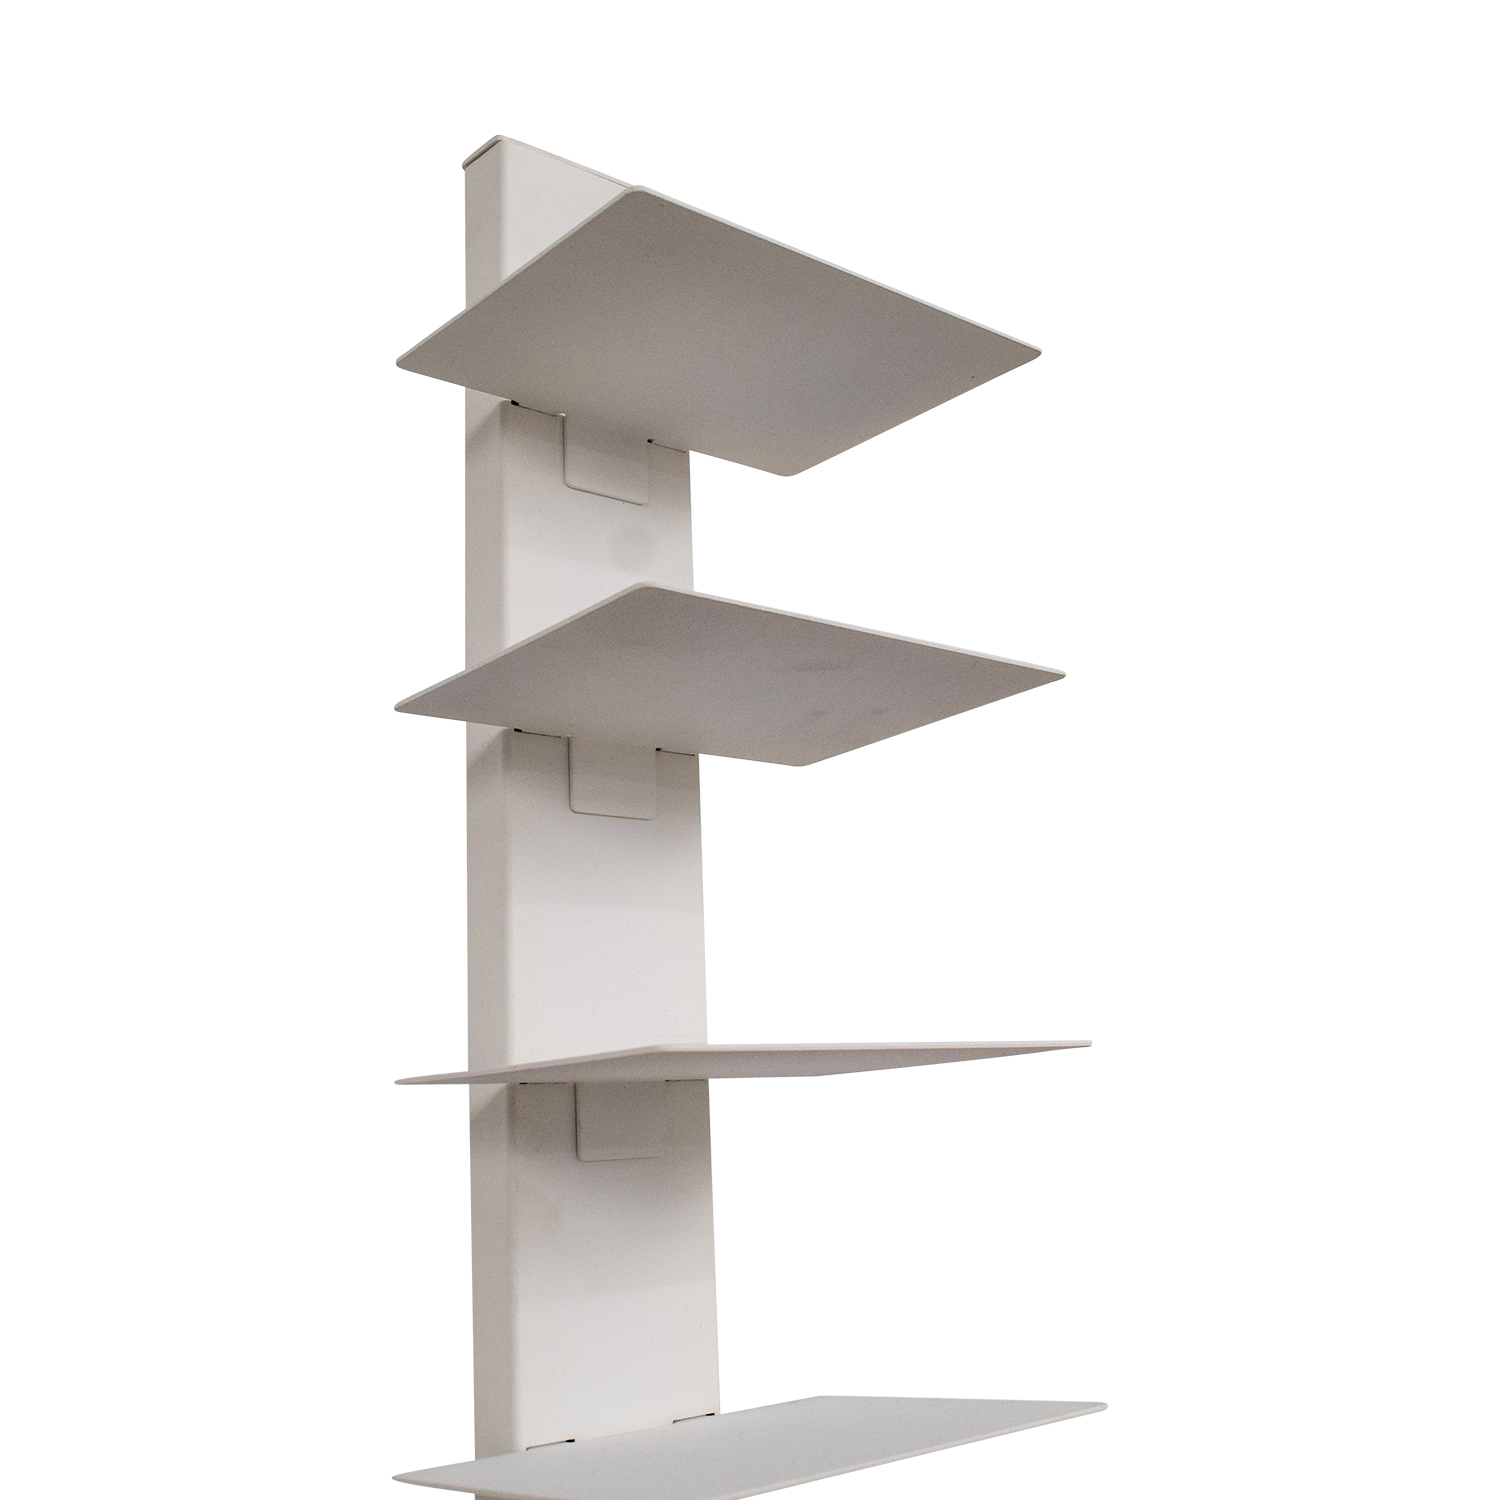 wood reach wall simple chair gorgeous book shelf the with black within door bookshelf and nice design on